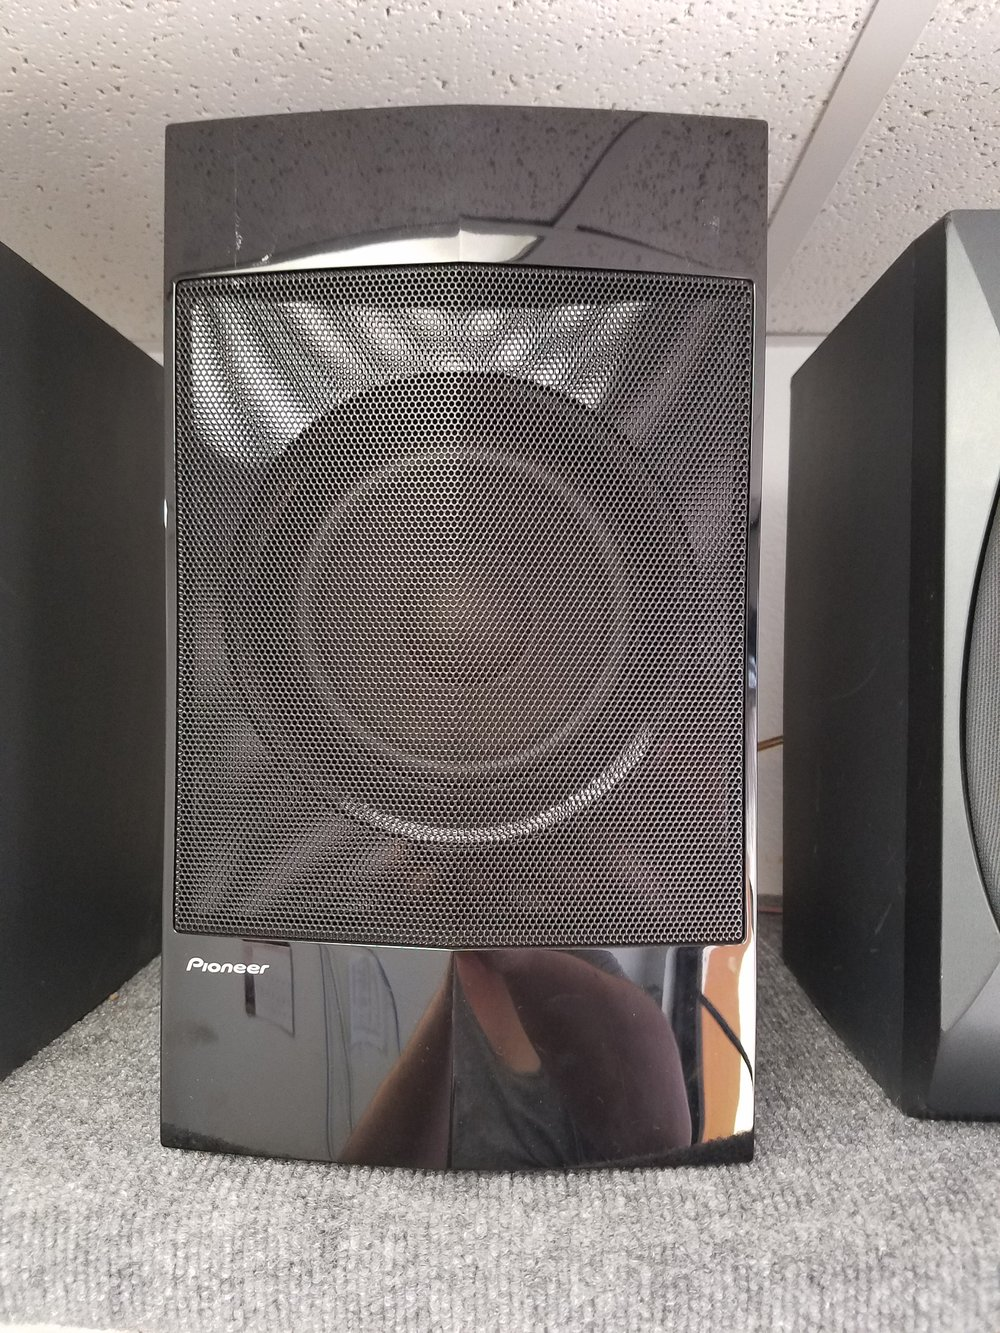 Pioneer Subwoofer - SMX-11364 - 65.00  Used